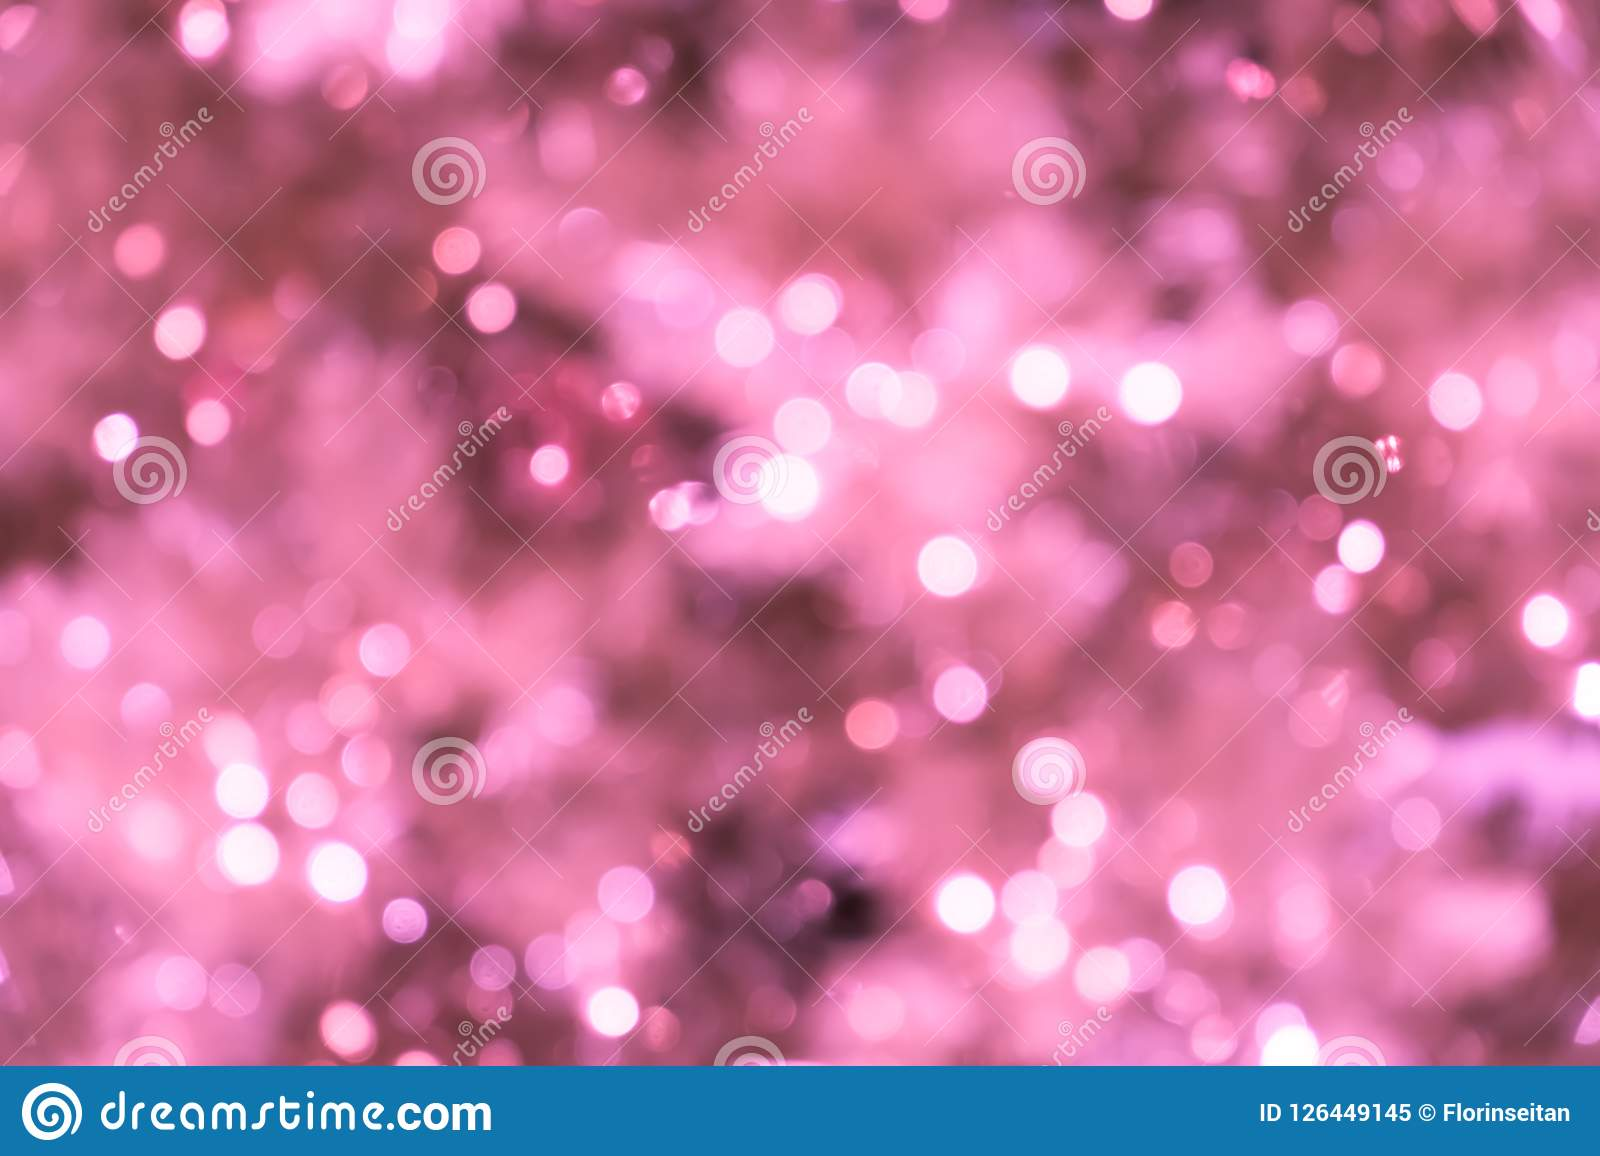 Download Pink Blurred Background With Bokeh Lights Closeup Of Christmas Tree